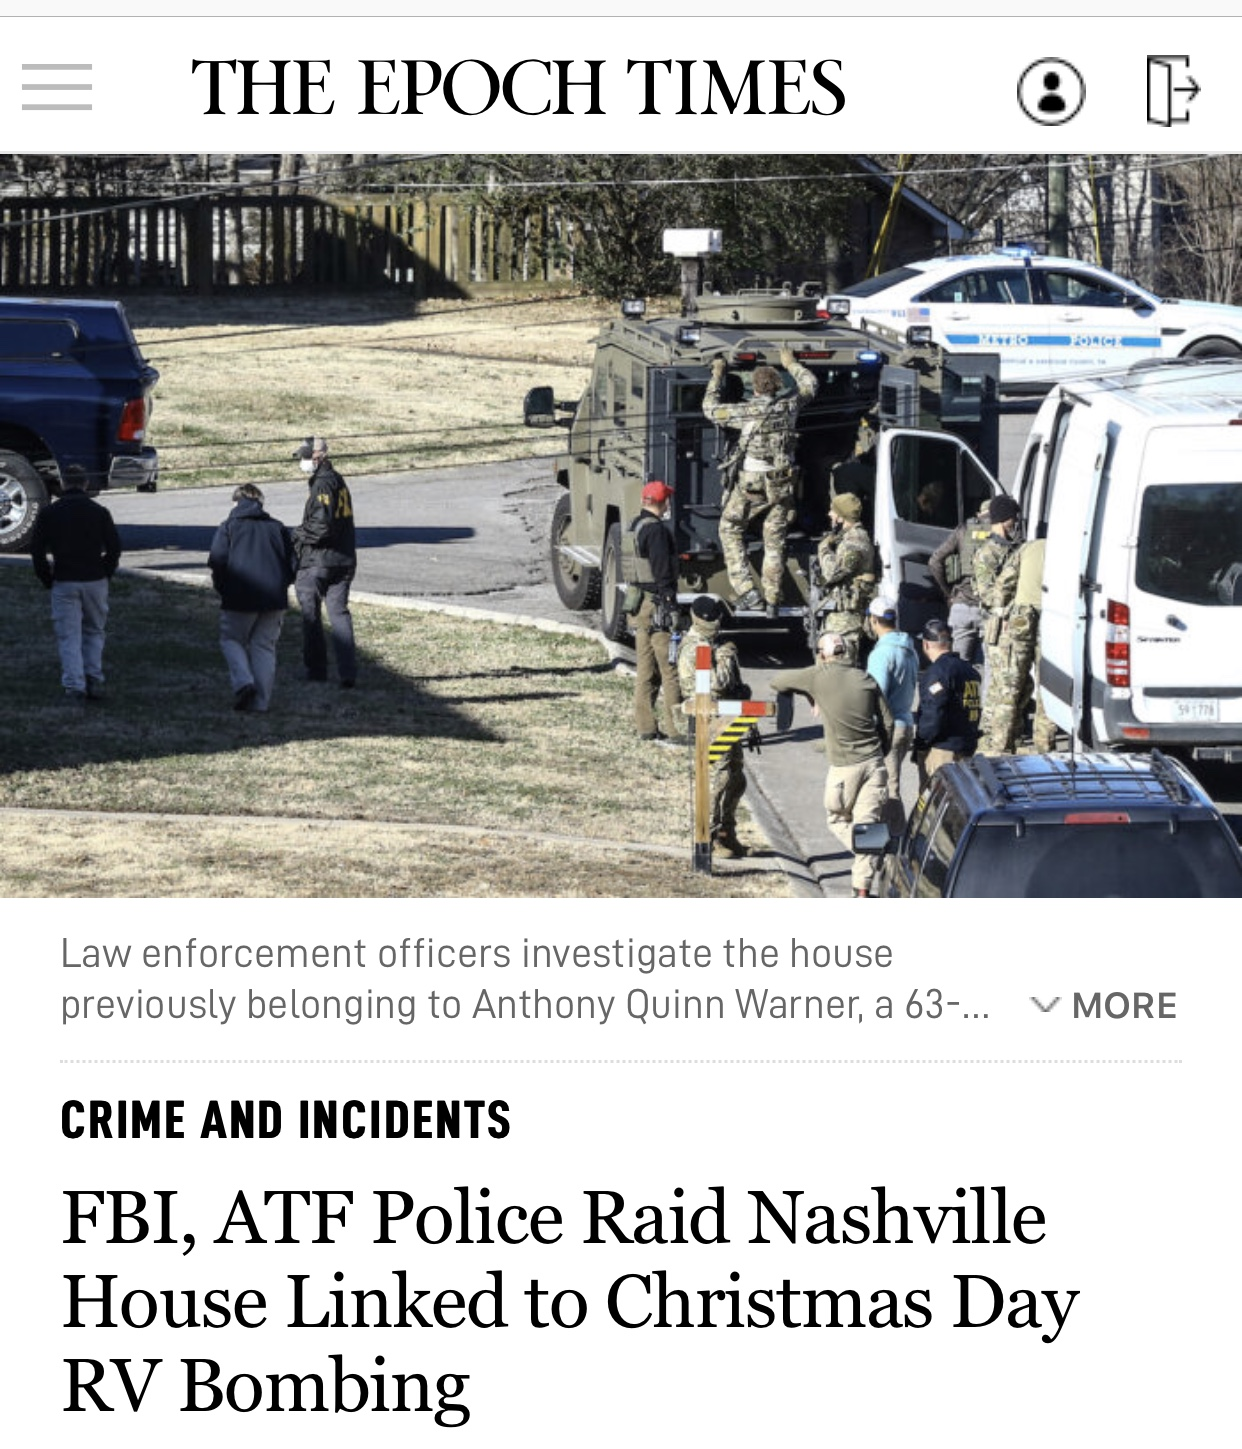 FBI, ATF Police Raid Nashville House Breaking News Linked to Christmas Day RV Bombing